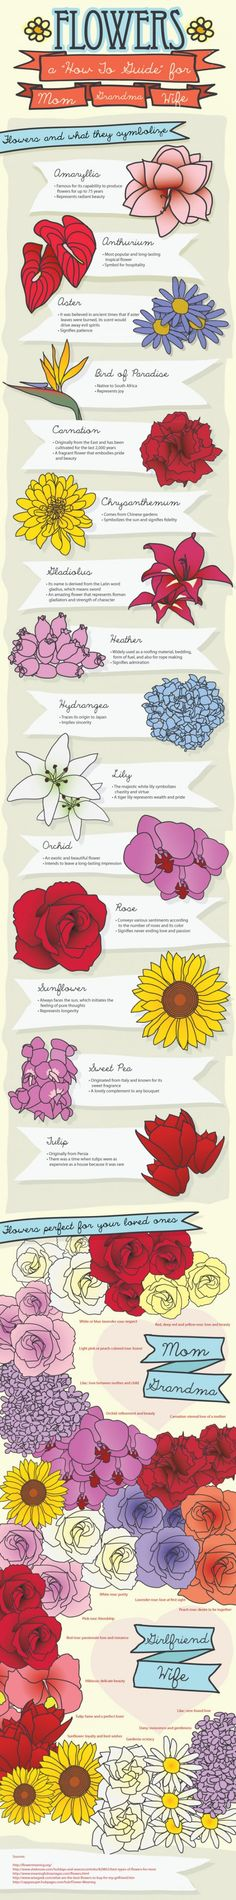 "A must read: Infographic: Choosing the Right Flower for the Right Occasion. You can say a lot with a simple flower. In fact, you might be saying more than you realize. Flowers have a lot of meaning, and this ""how to guide"" can help you discover a little more about these beautiful gifts. The traditional rose, for example, can say many different things depending on the color and the number you send."